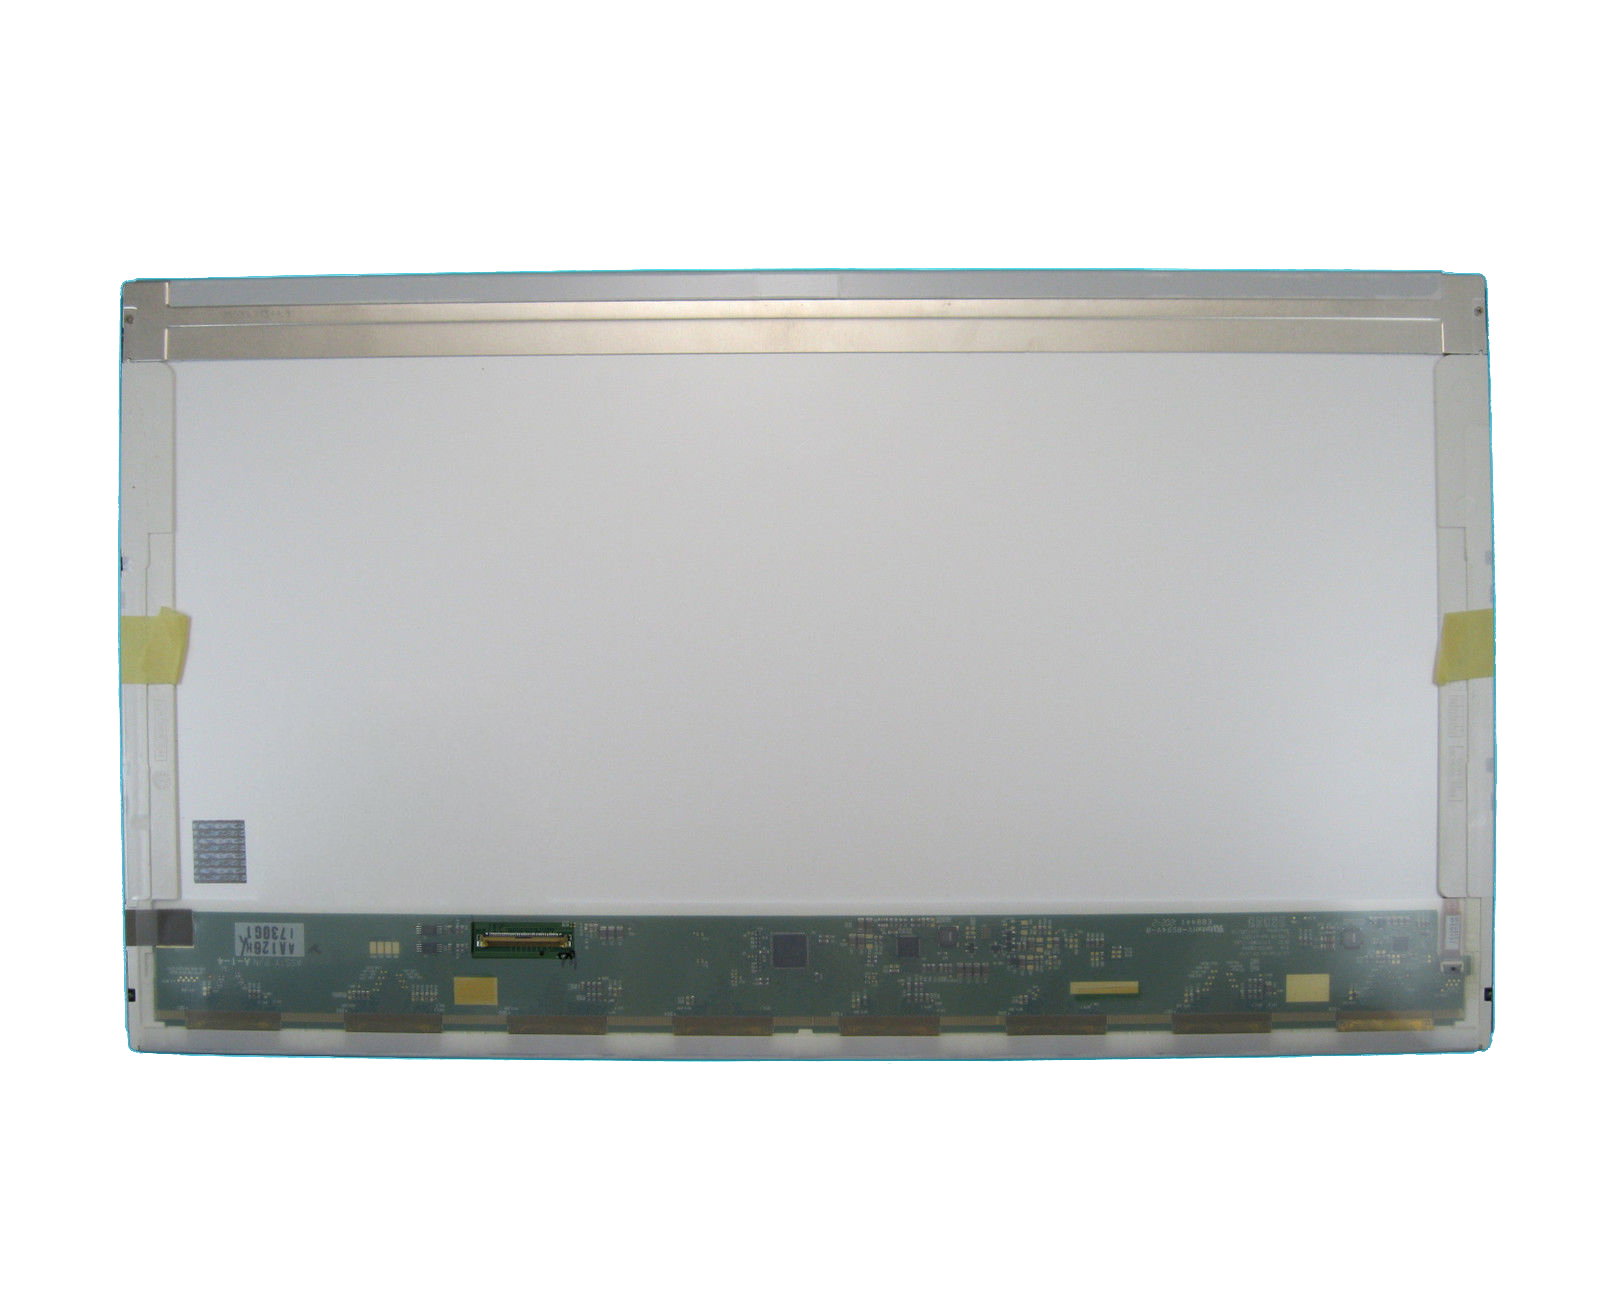 QuYing Laptop LCD Screen for ACER ASPIRE E1-771 E1-771G E1-731 V3-771 V3-771G V3-731 V3-731G P7YE5 SERIES (17.3 1600x900 40pin) jigu 7750g new laptop battery for acer aspire v3 v3 471g v3 551g v3 571g v3 771g e1 e1 421 e1 431 e1 471 e1 531 e1 571 series